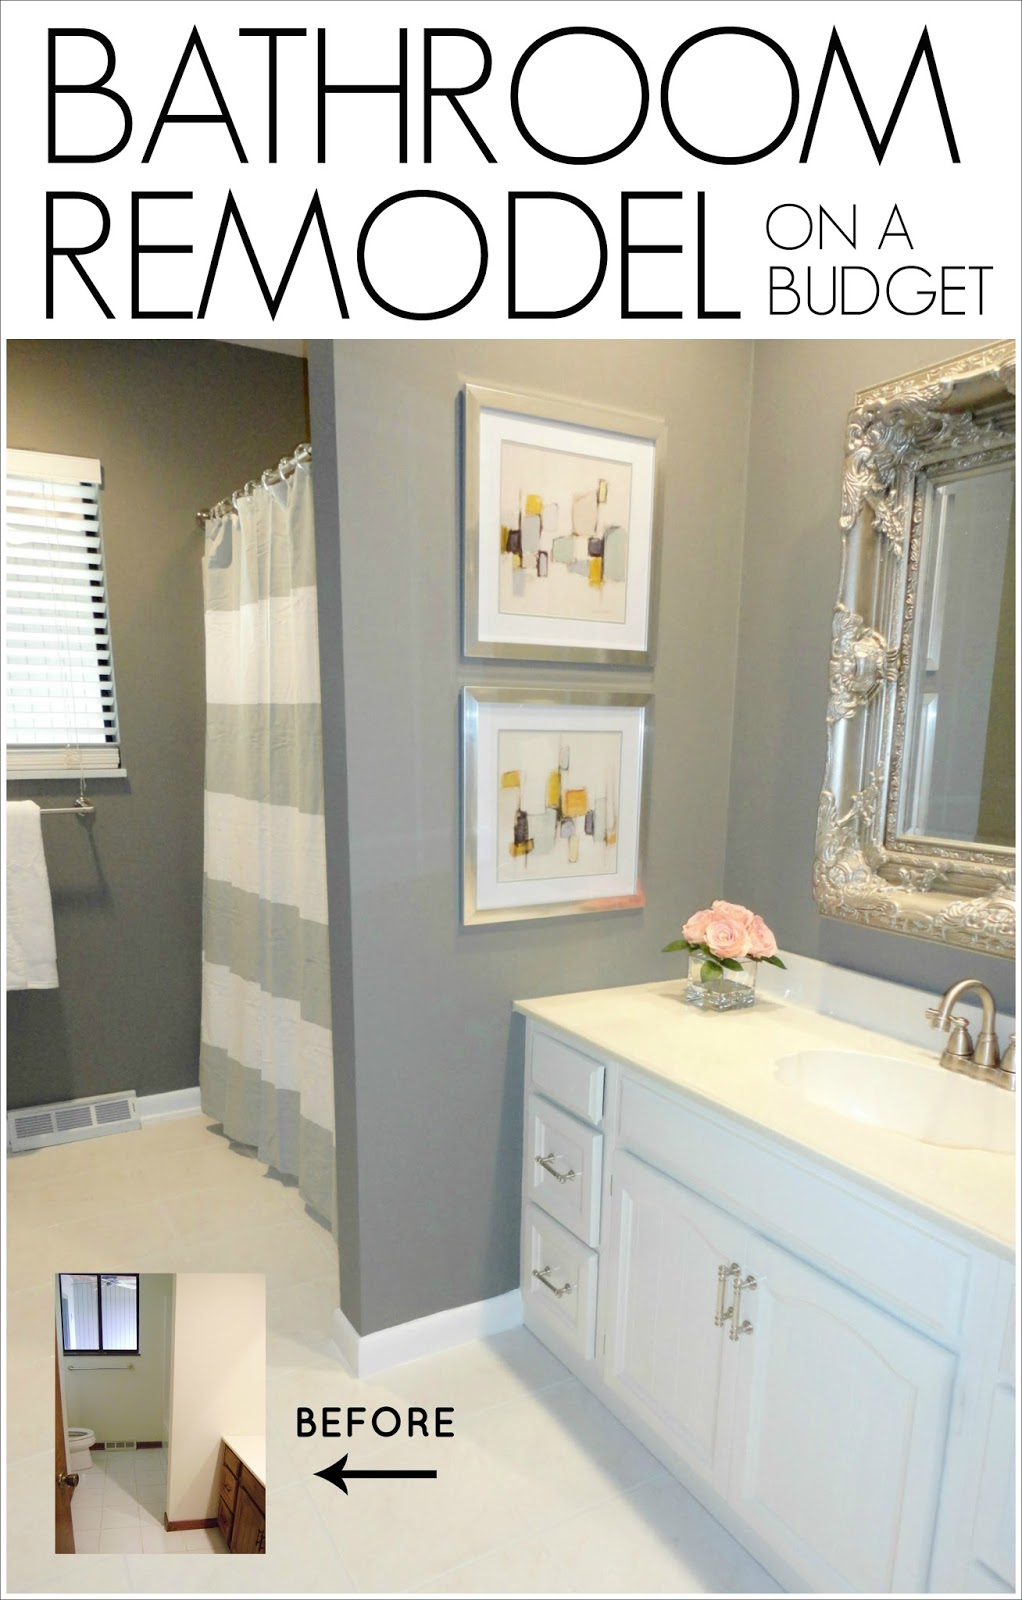 Livelovediy diy bathroom remodel on a budget for Bathroom interior design on a budget